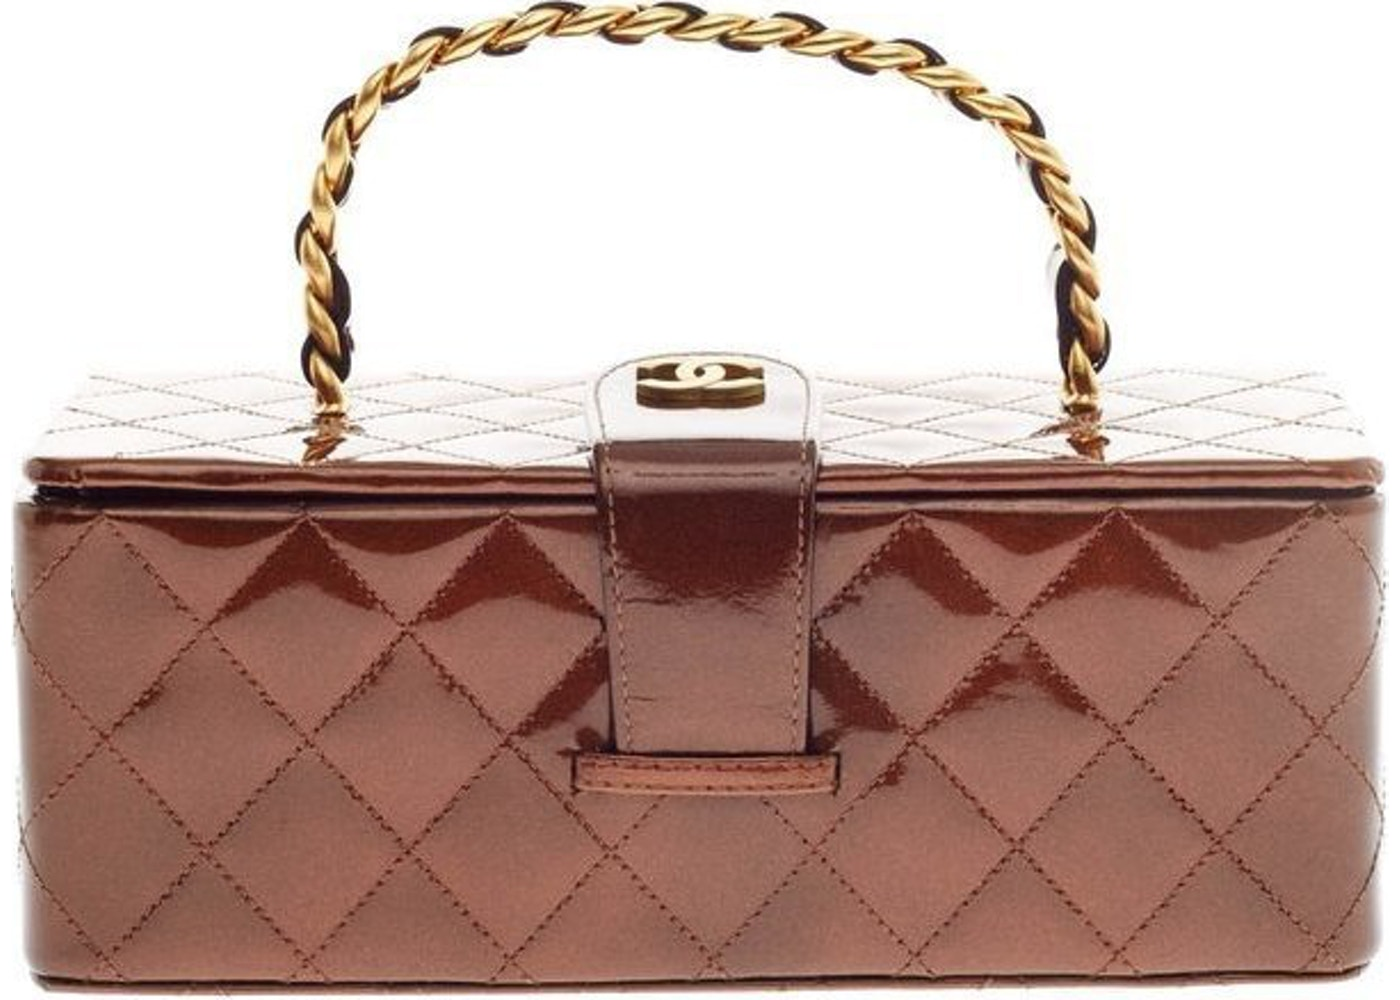 90a277ee83b3 Chanel Frame Box Vintage Top Handle Quilted Brown